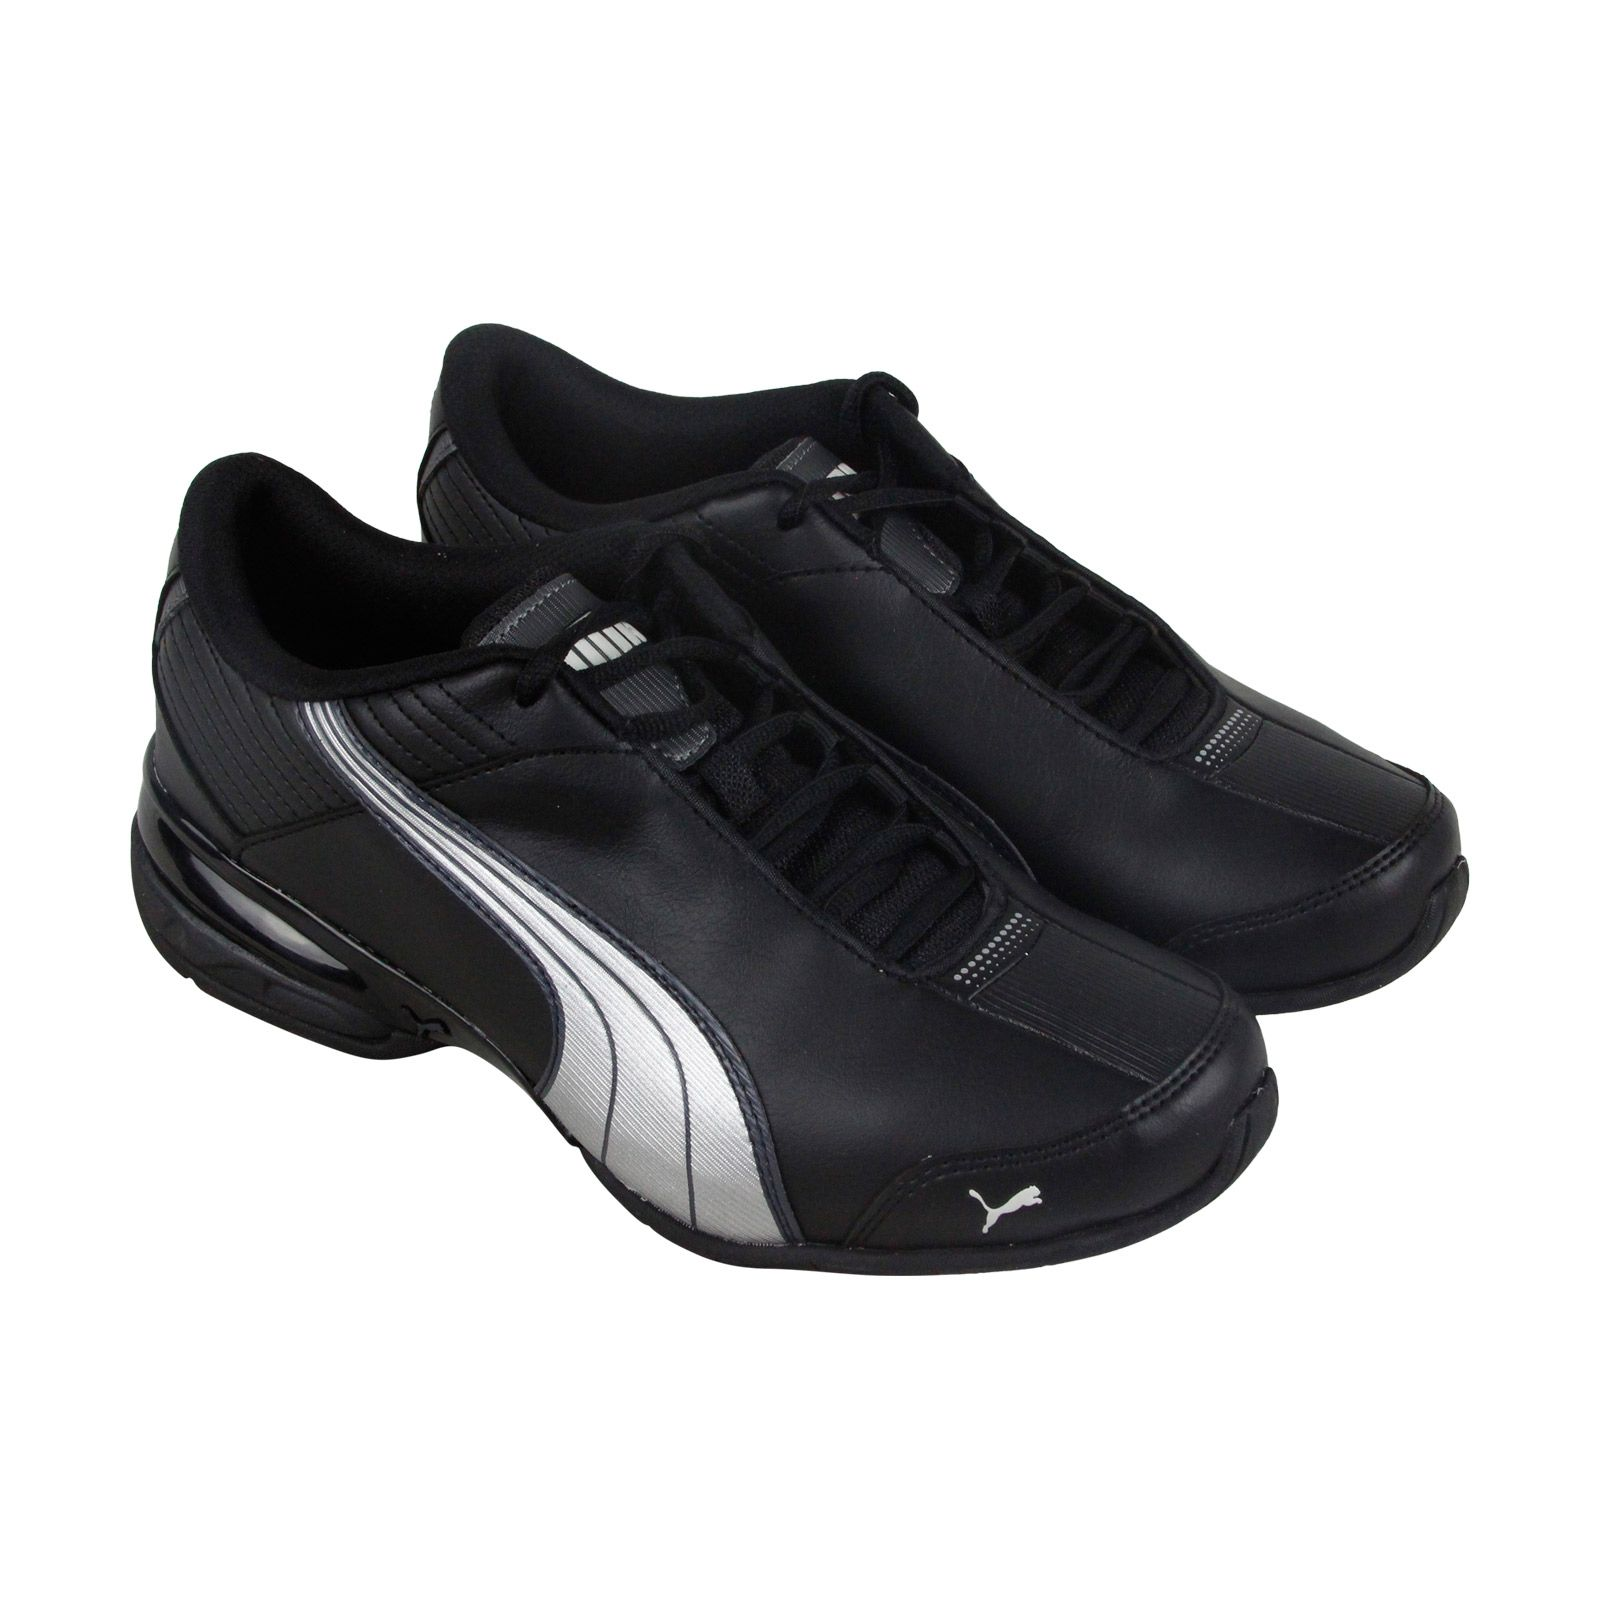 7a2788a72767ea Puma Super Elevate Mens Black Synthetic Athletic Lace Up Running Shoes